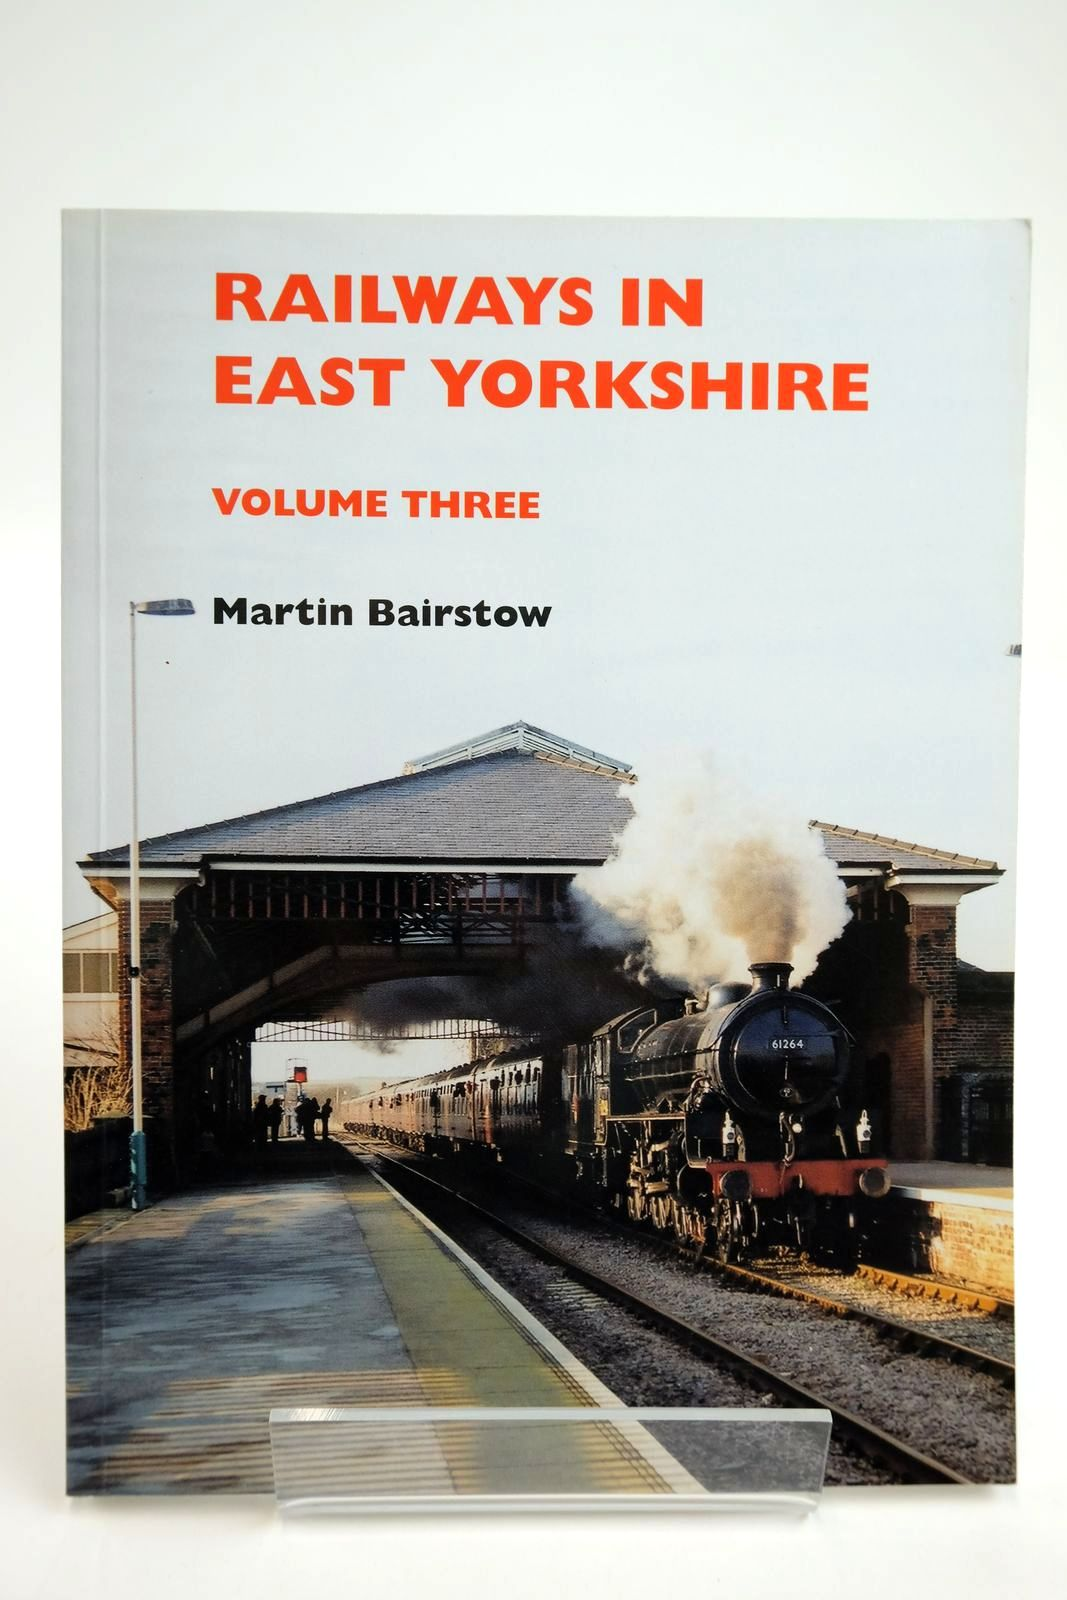 Photo of RAILWAYS IN EAST YORKSHIRE VOLUME THREE written by Bairstow, Martin published by Martin Bairstow (STOCK CODE: 2133732)  for sale by Stella & Rose's Books